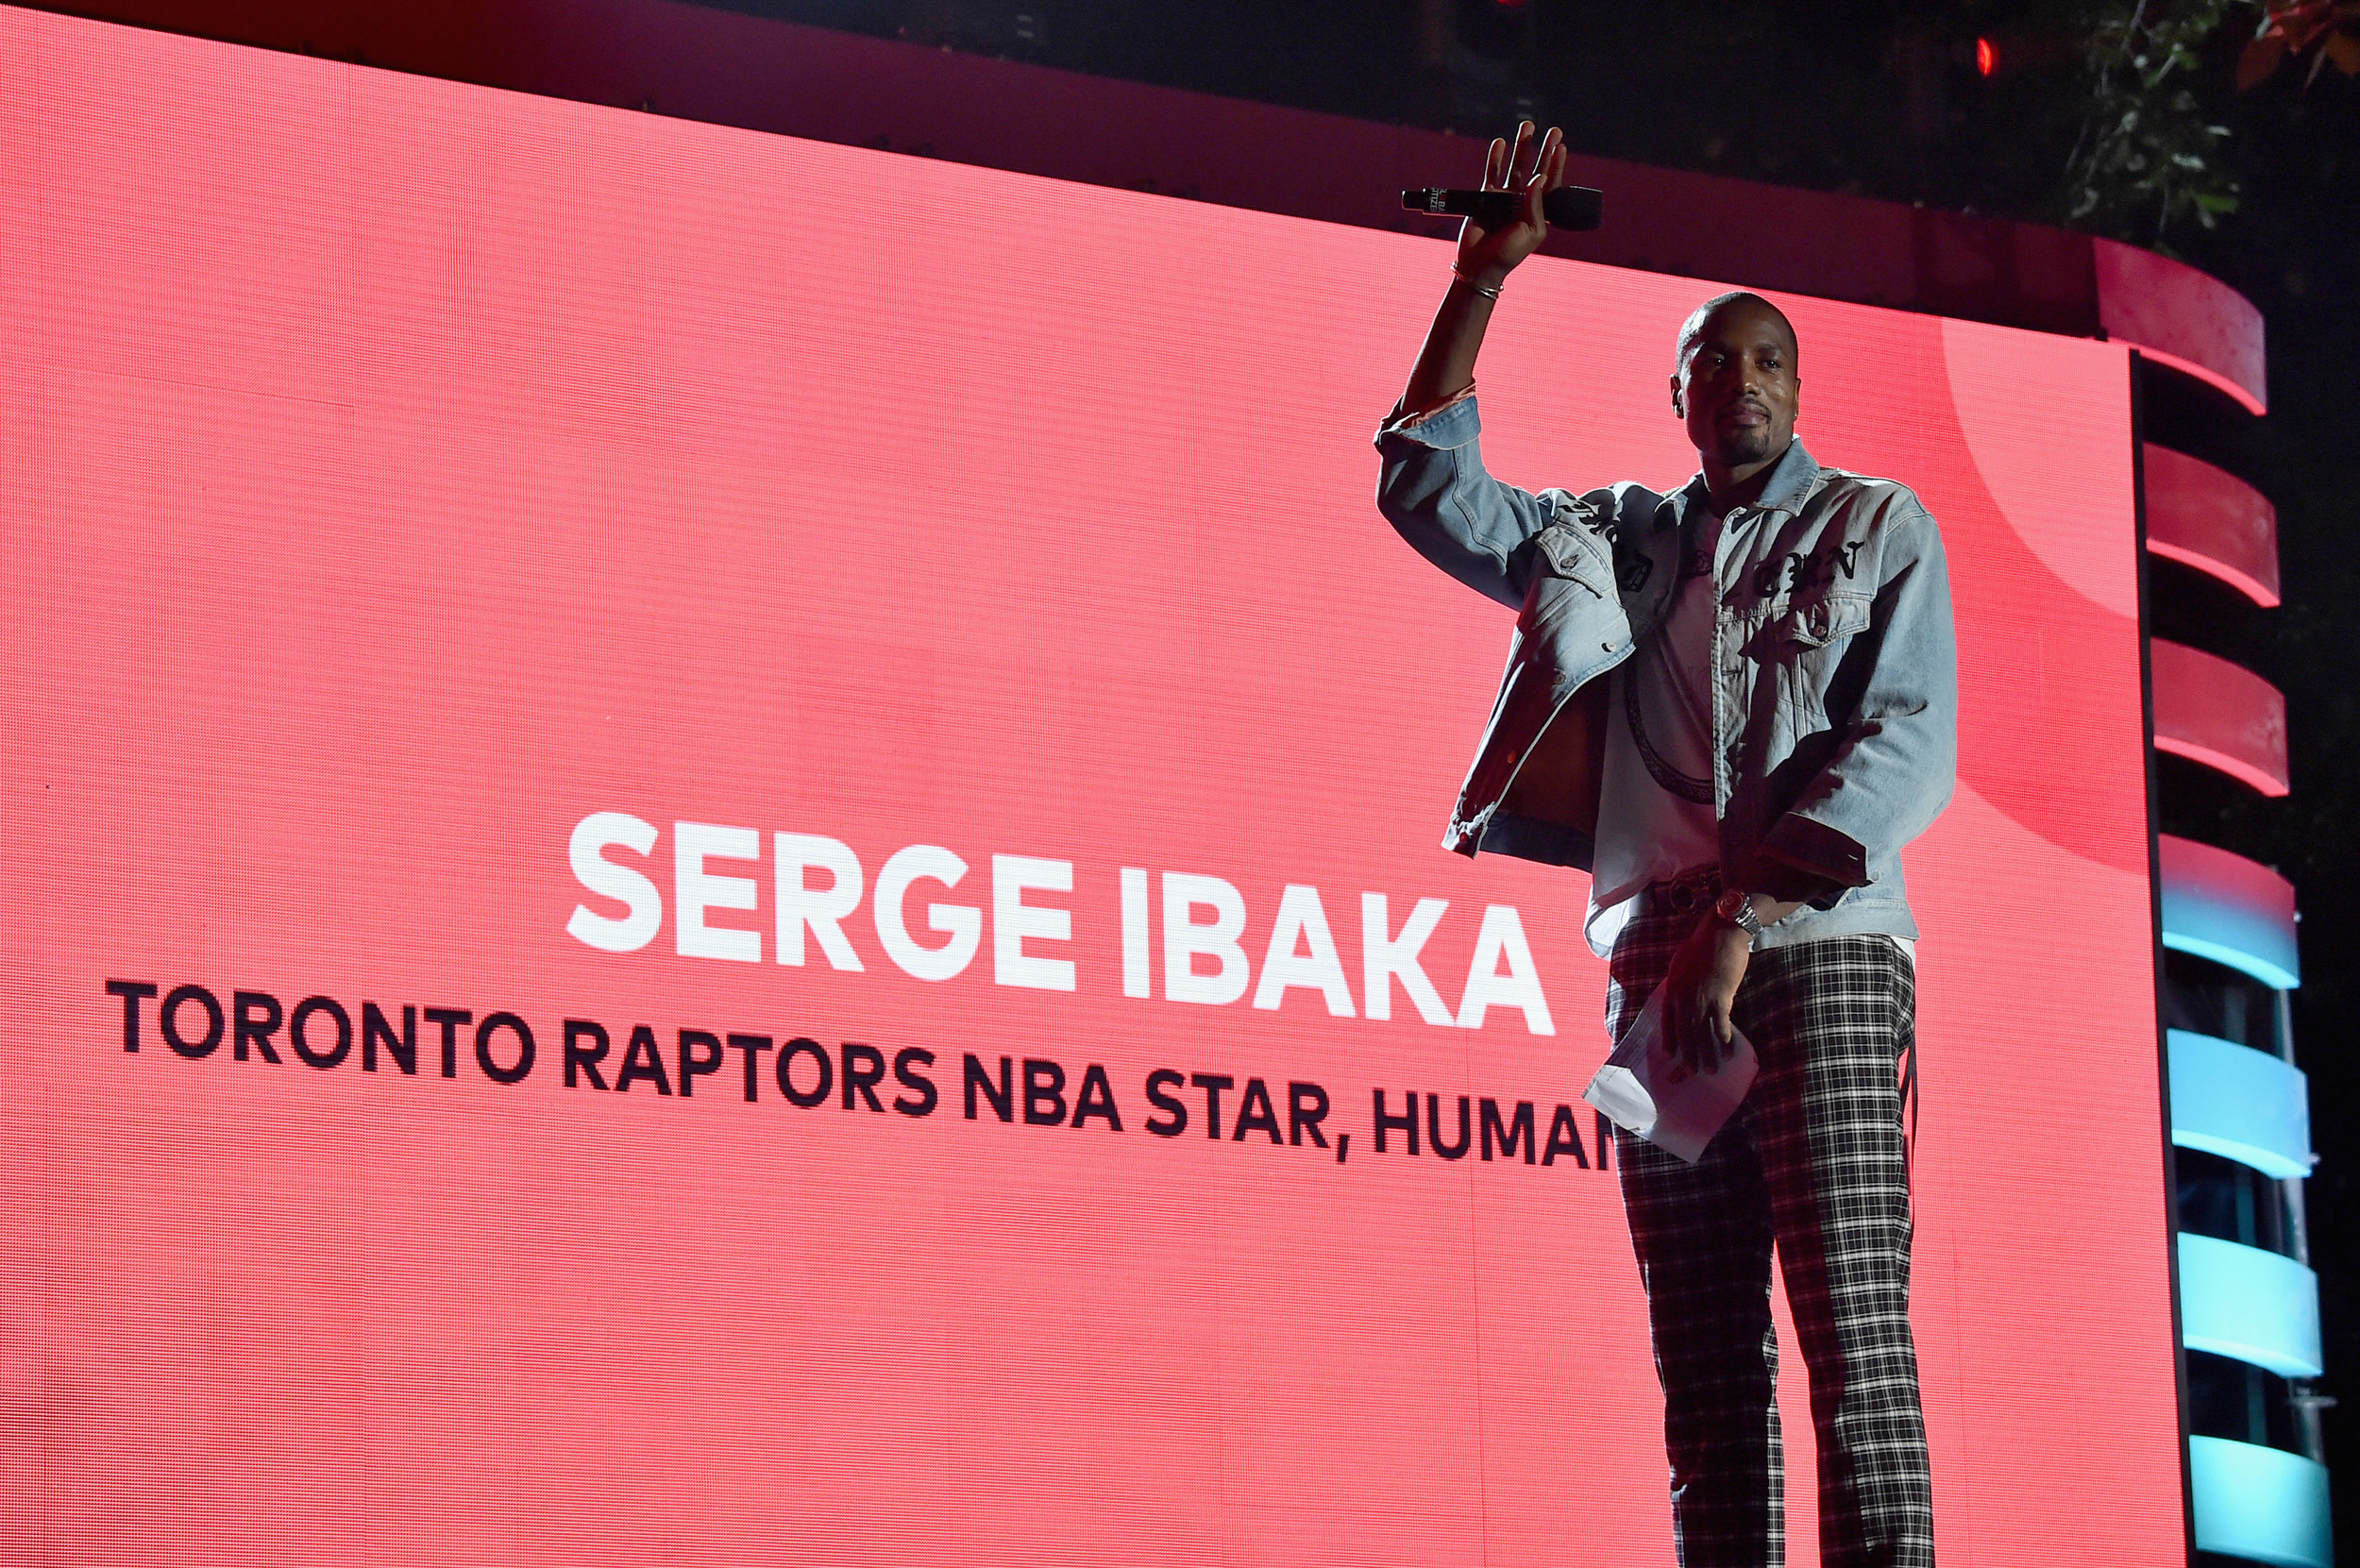 | PHOTOGRAPHY Theo Wargo/Getty Images for Global Citizen - Toronto Raptors, Serge Ibaka |